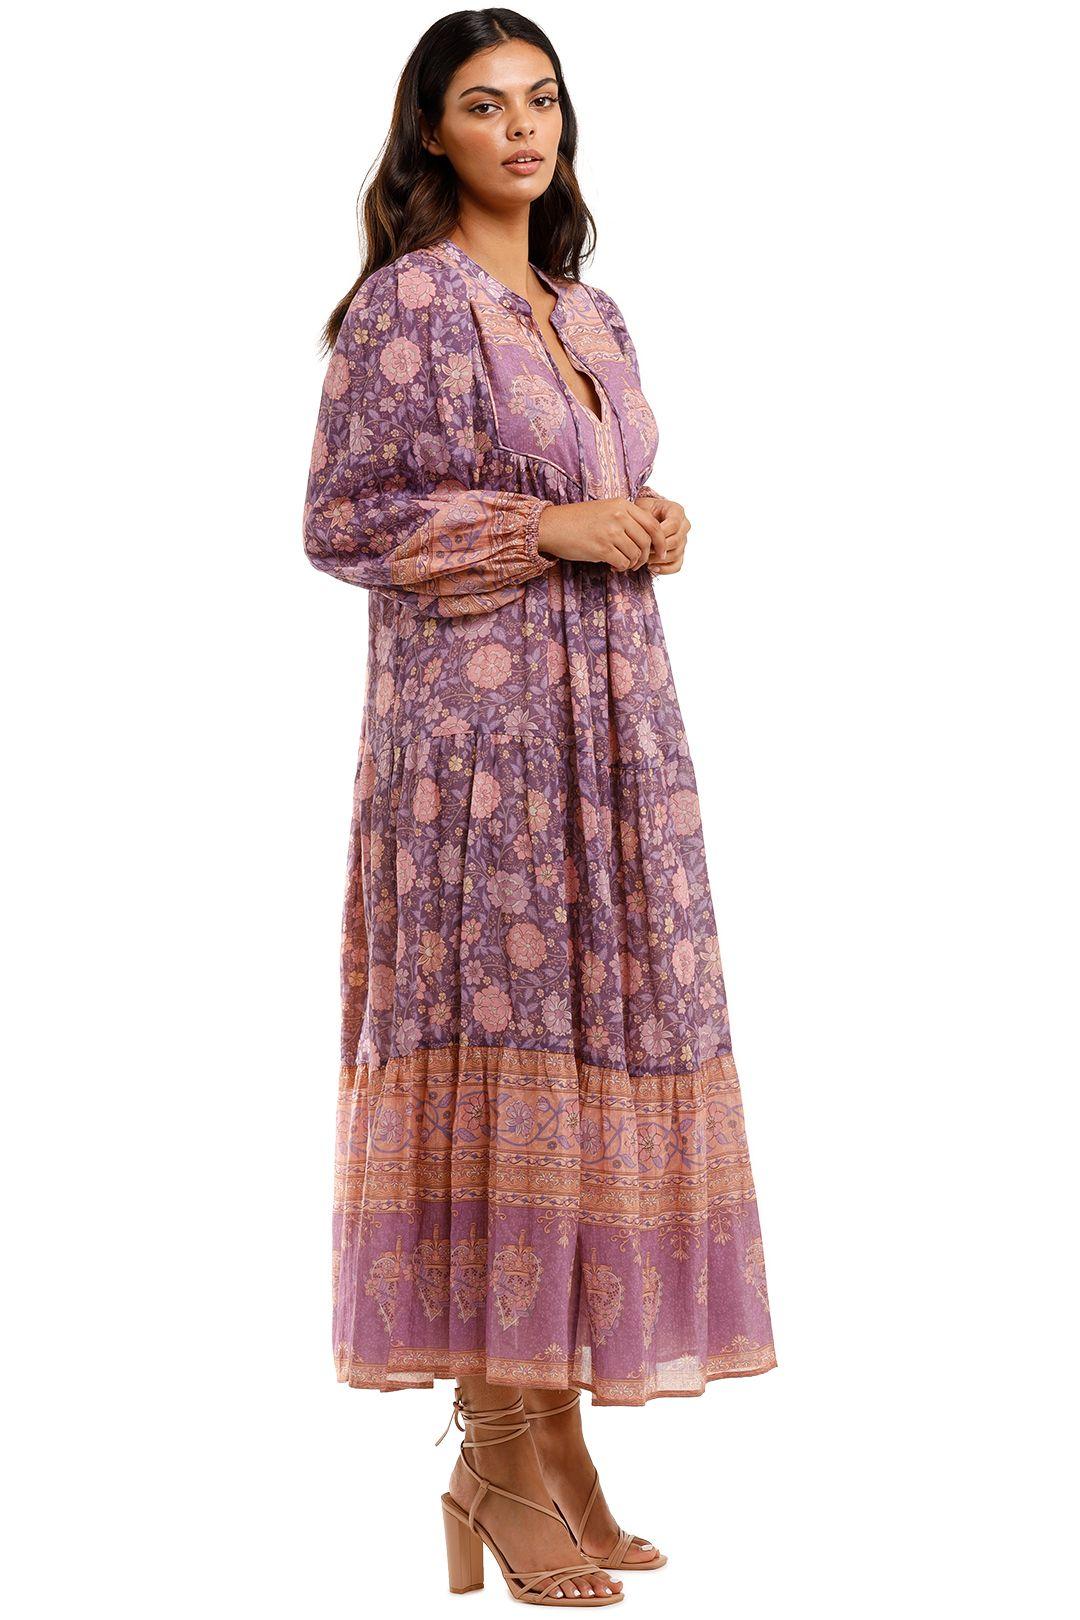 Spell Love Story Gown Royal Lilac Purple Tie Neck